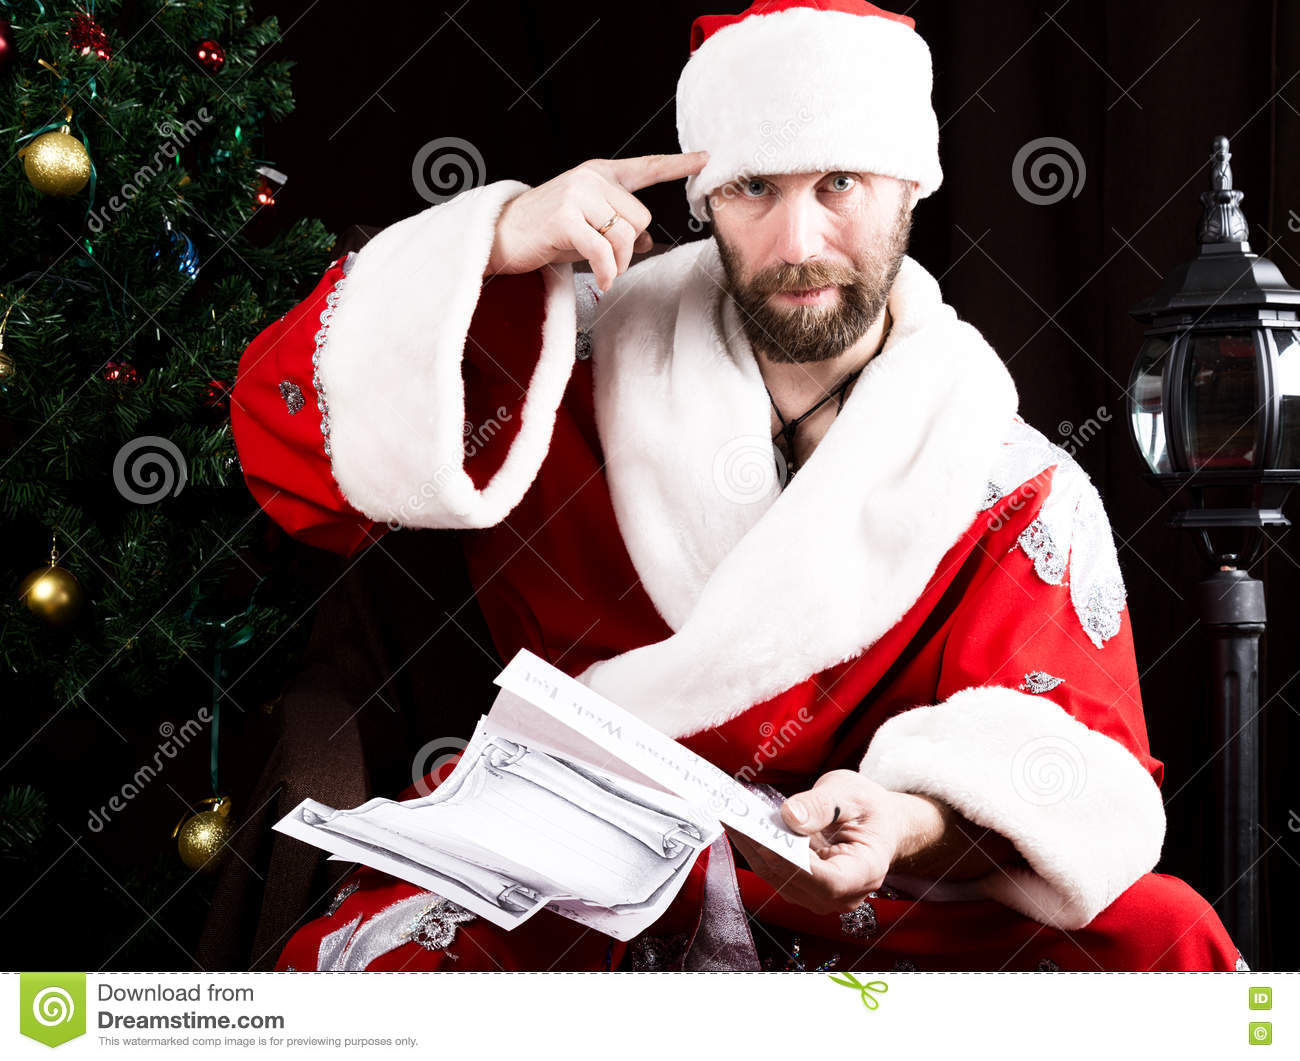 Bad brutal Santa Claus discontentedly reads letter with wishes and twists finger at a temple, on the background of